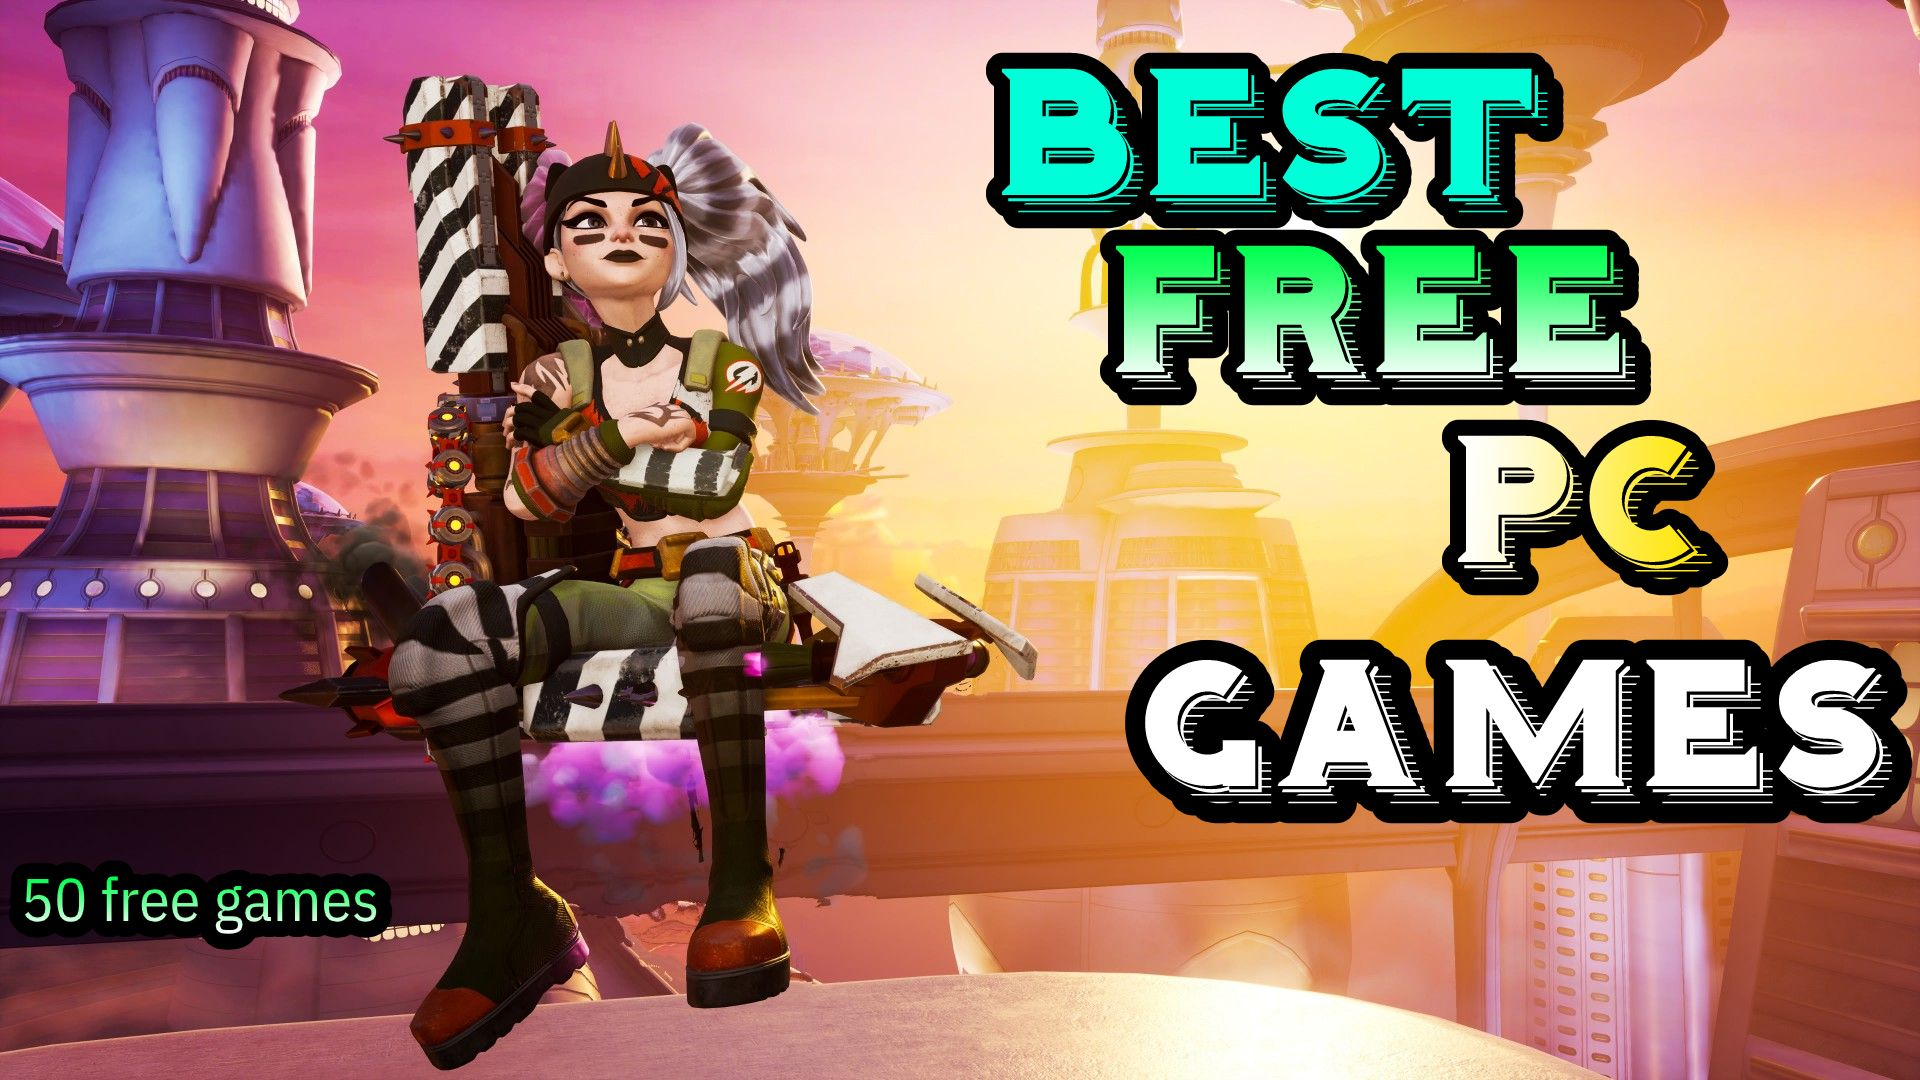 Best Free Games 2020 The Top Free Games To Download On Pc Free Games Epic Games Games To Play